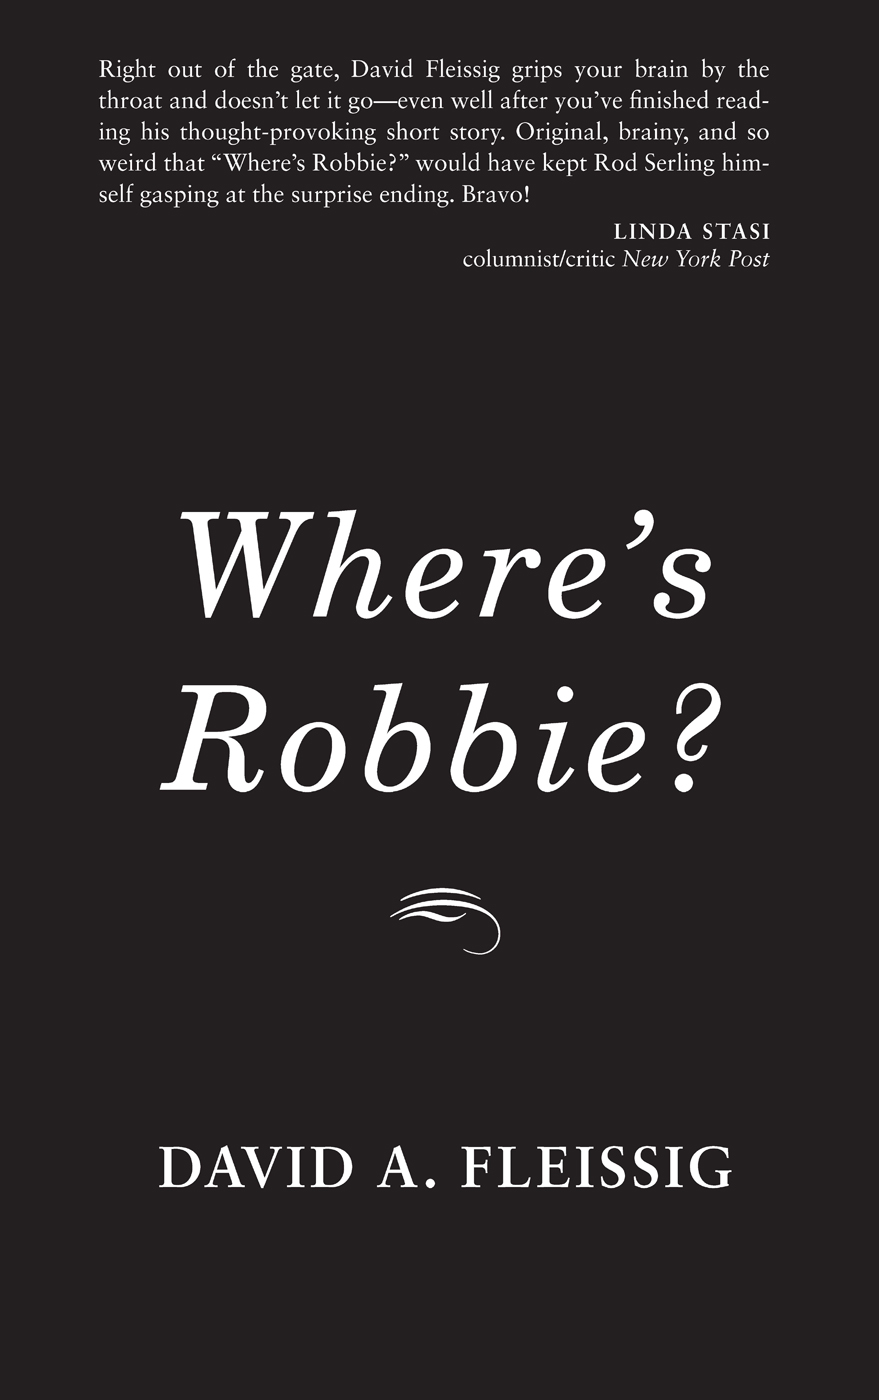 Where's Robbie? By: David Fleissig